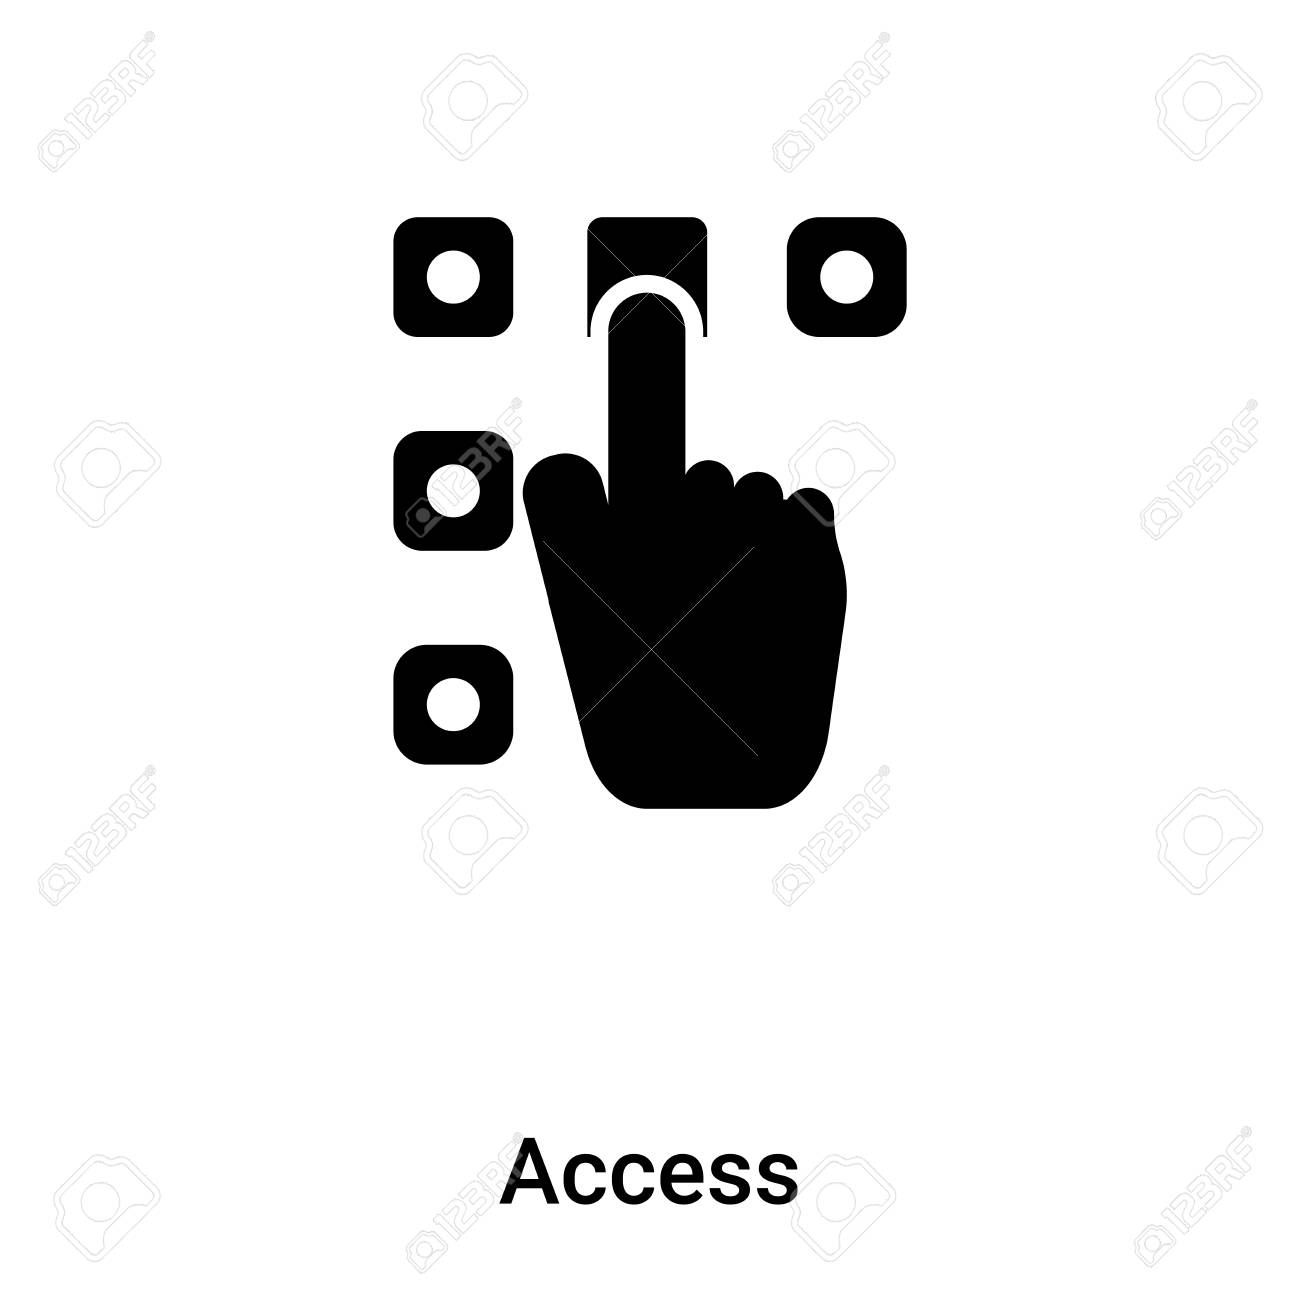 Access icon isolated on white background, concept of Access sign on transparent background, filled black symbol - 125620001